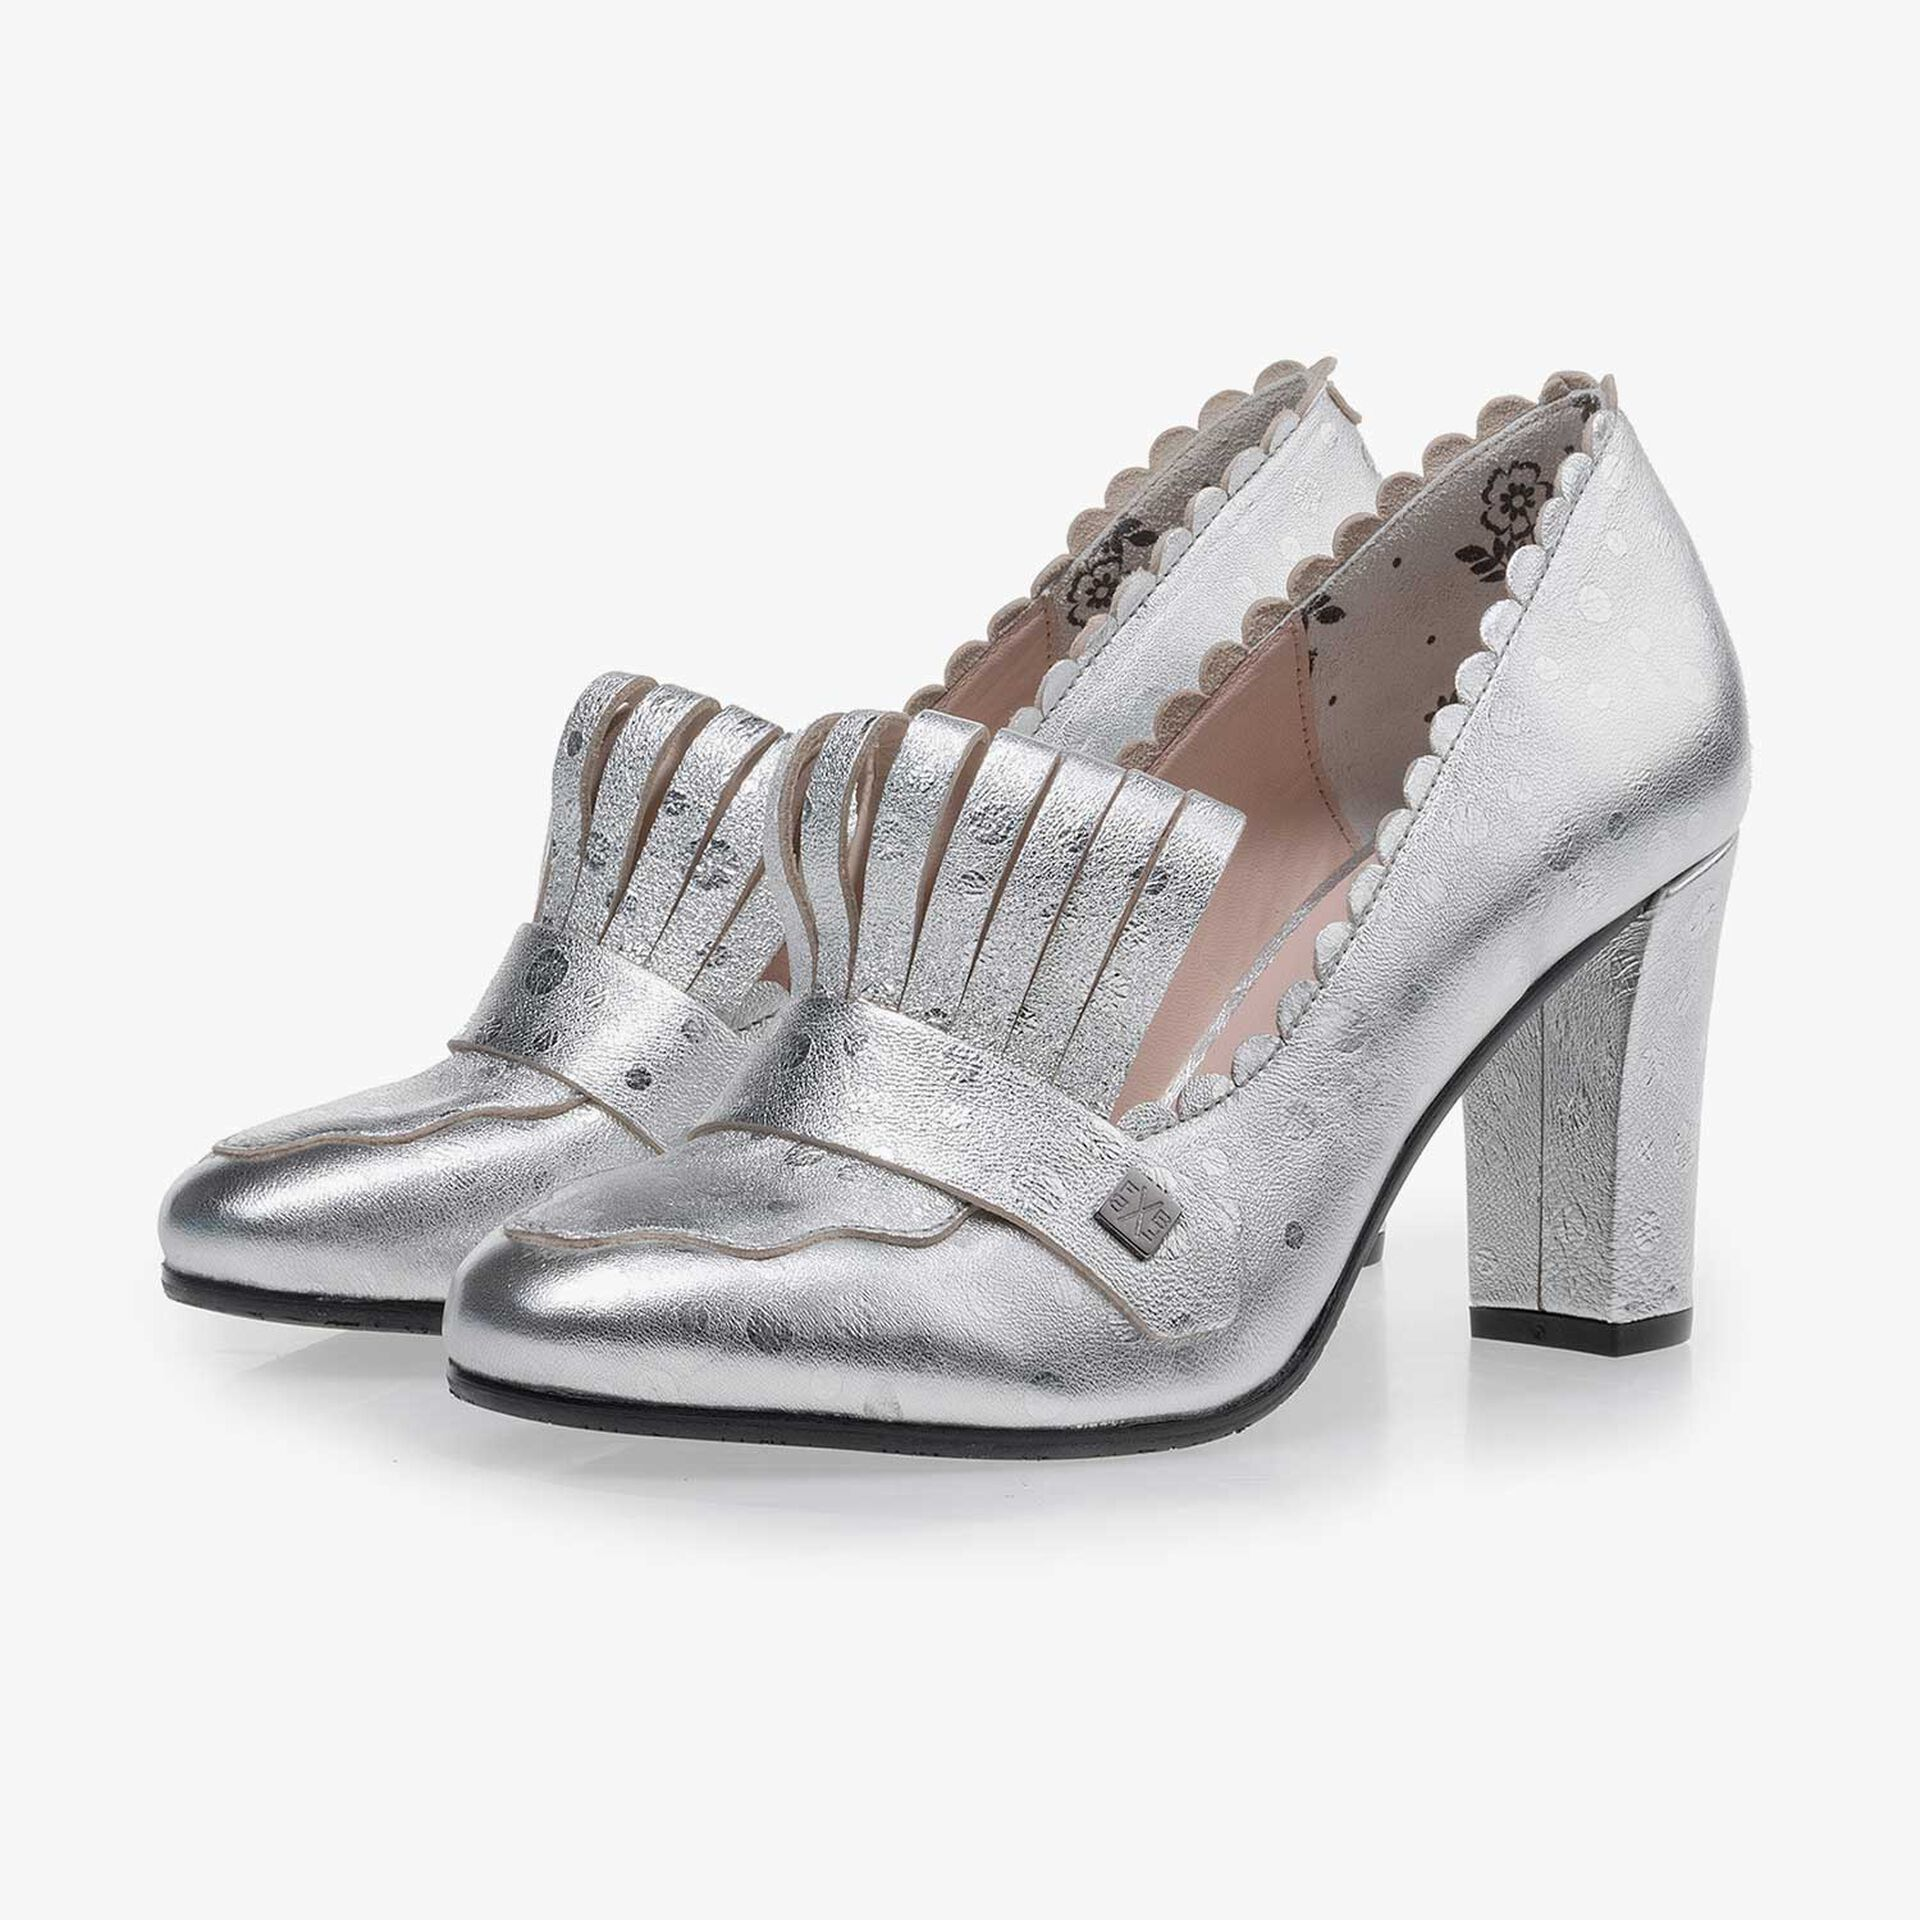 Silver-coloured leather pumps with dotted design